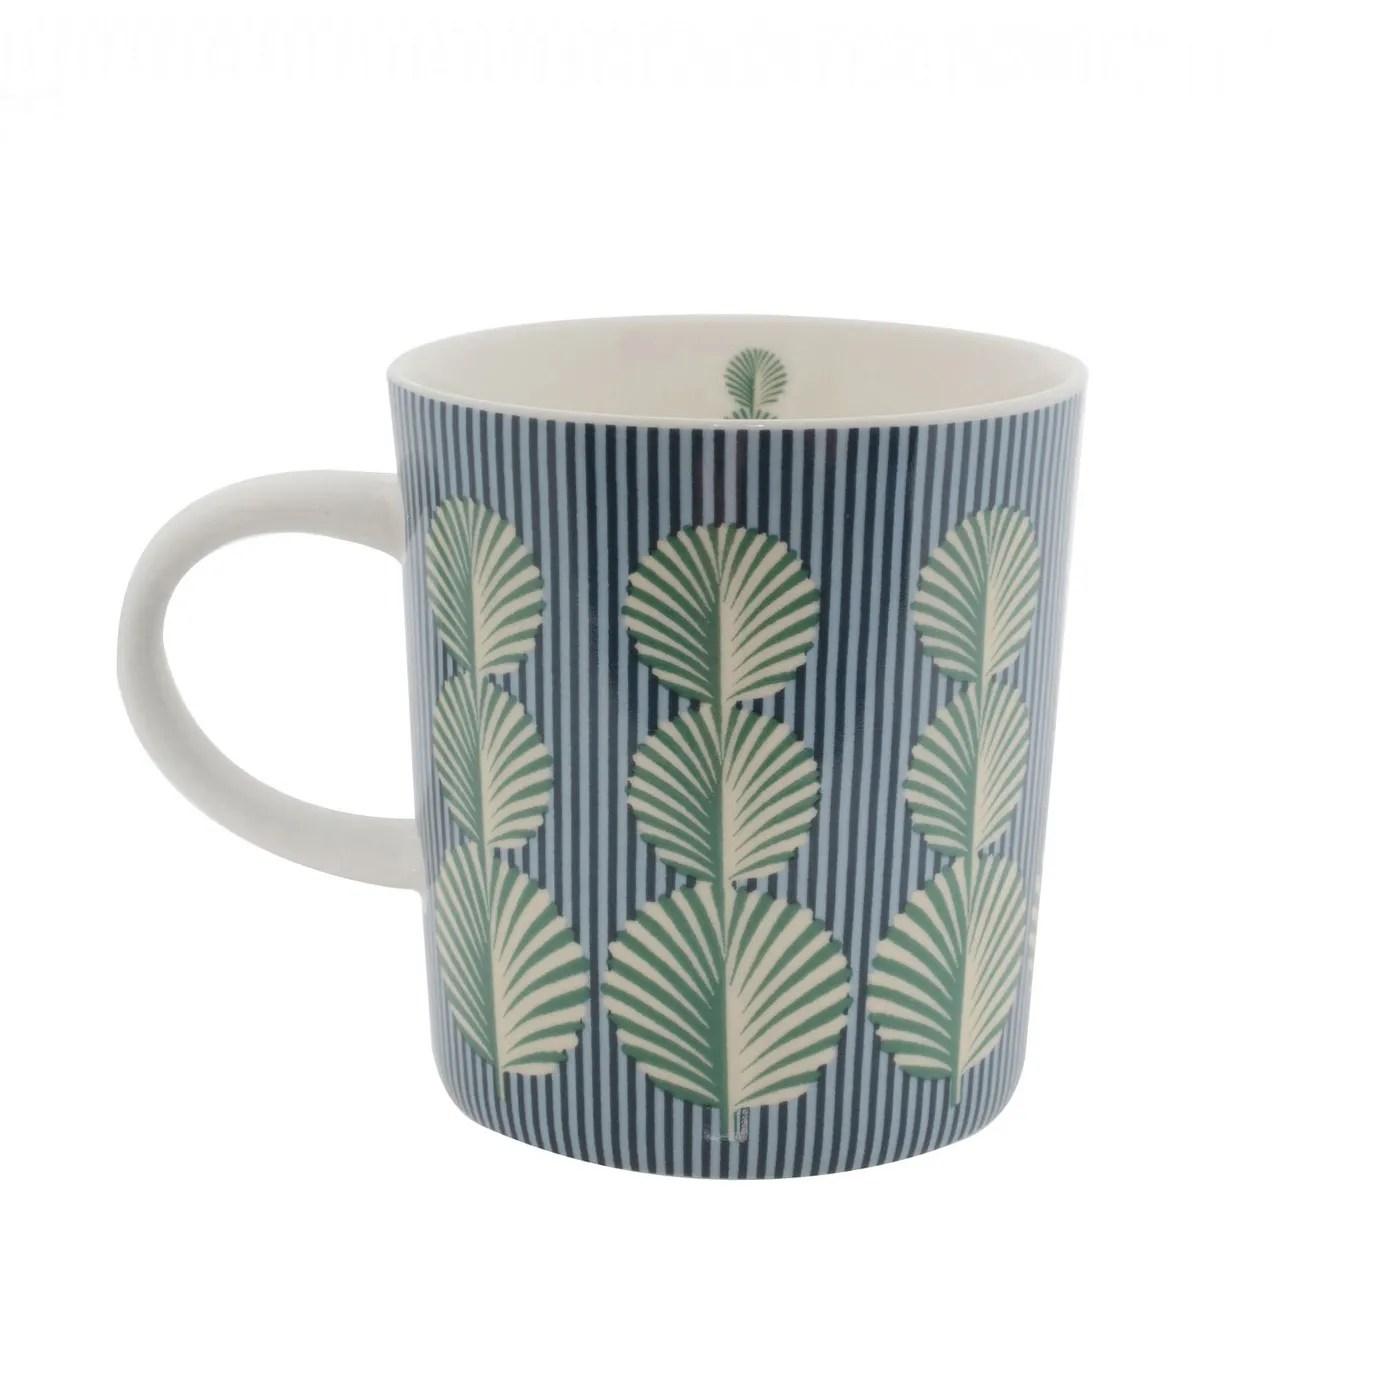 Deco Mug Heal 39s Trees Deco Mug